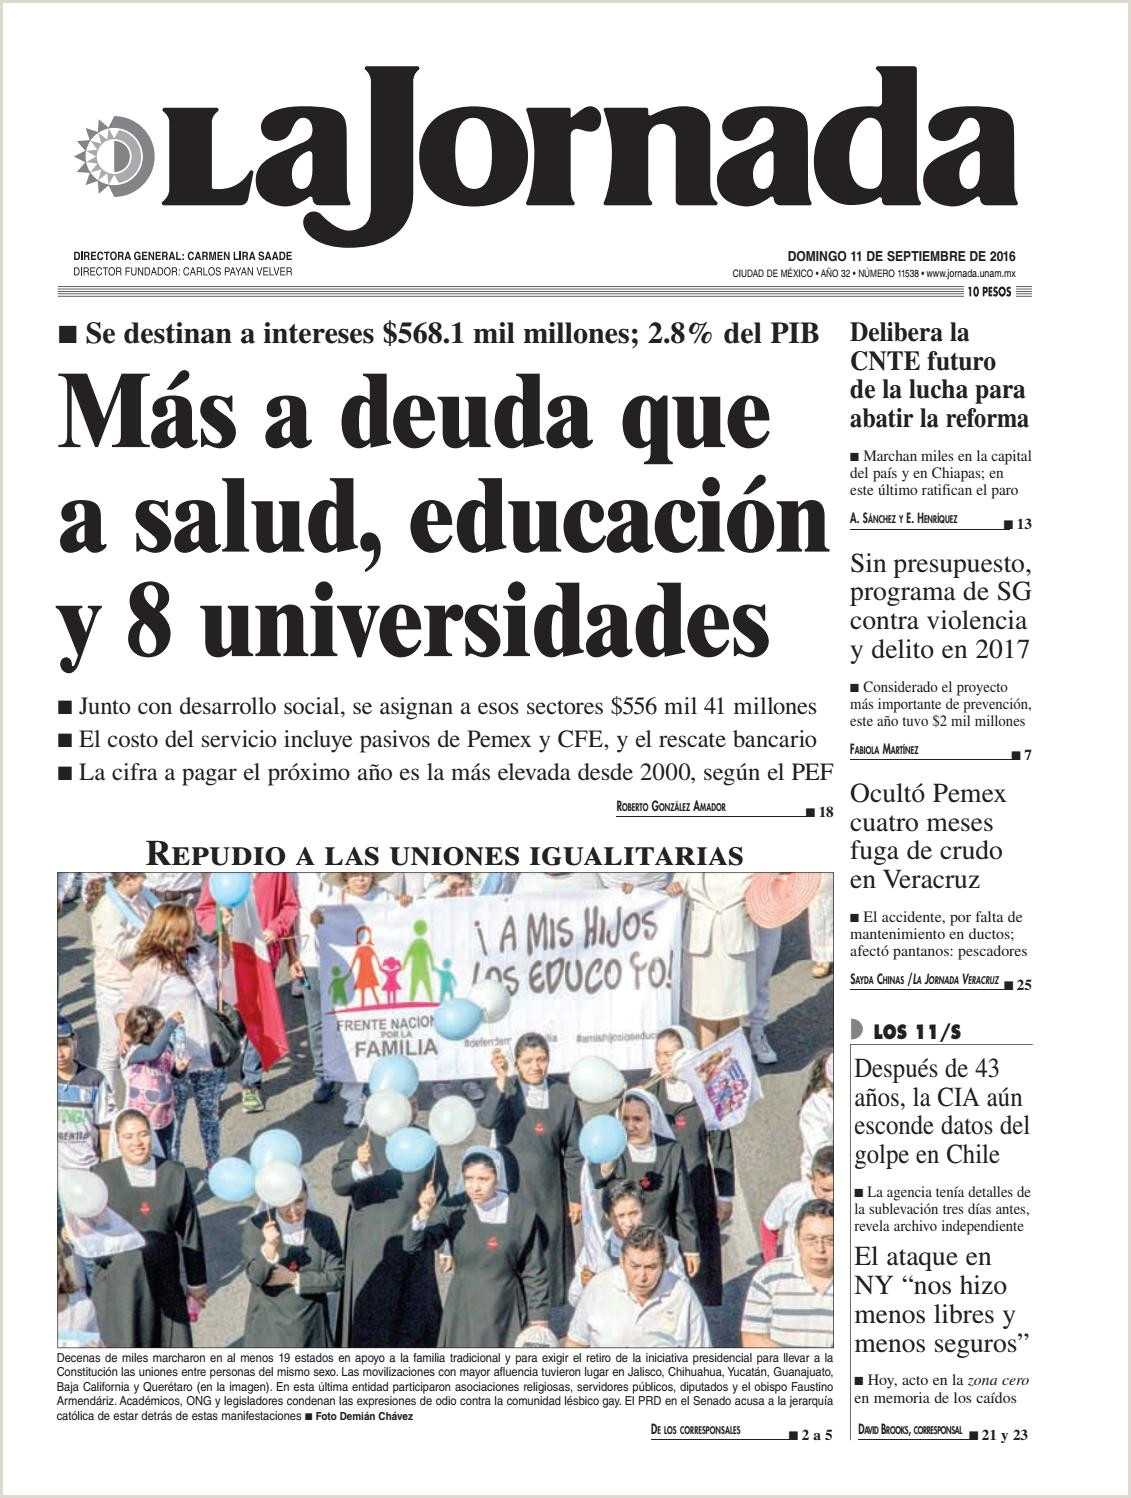 La Jornada 09 11 2016 by La Jornada issuu